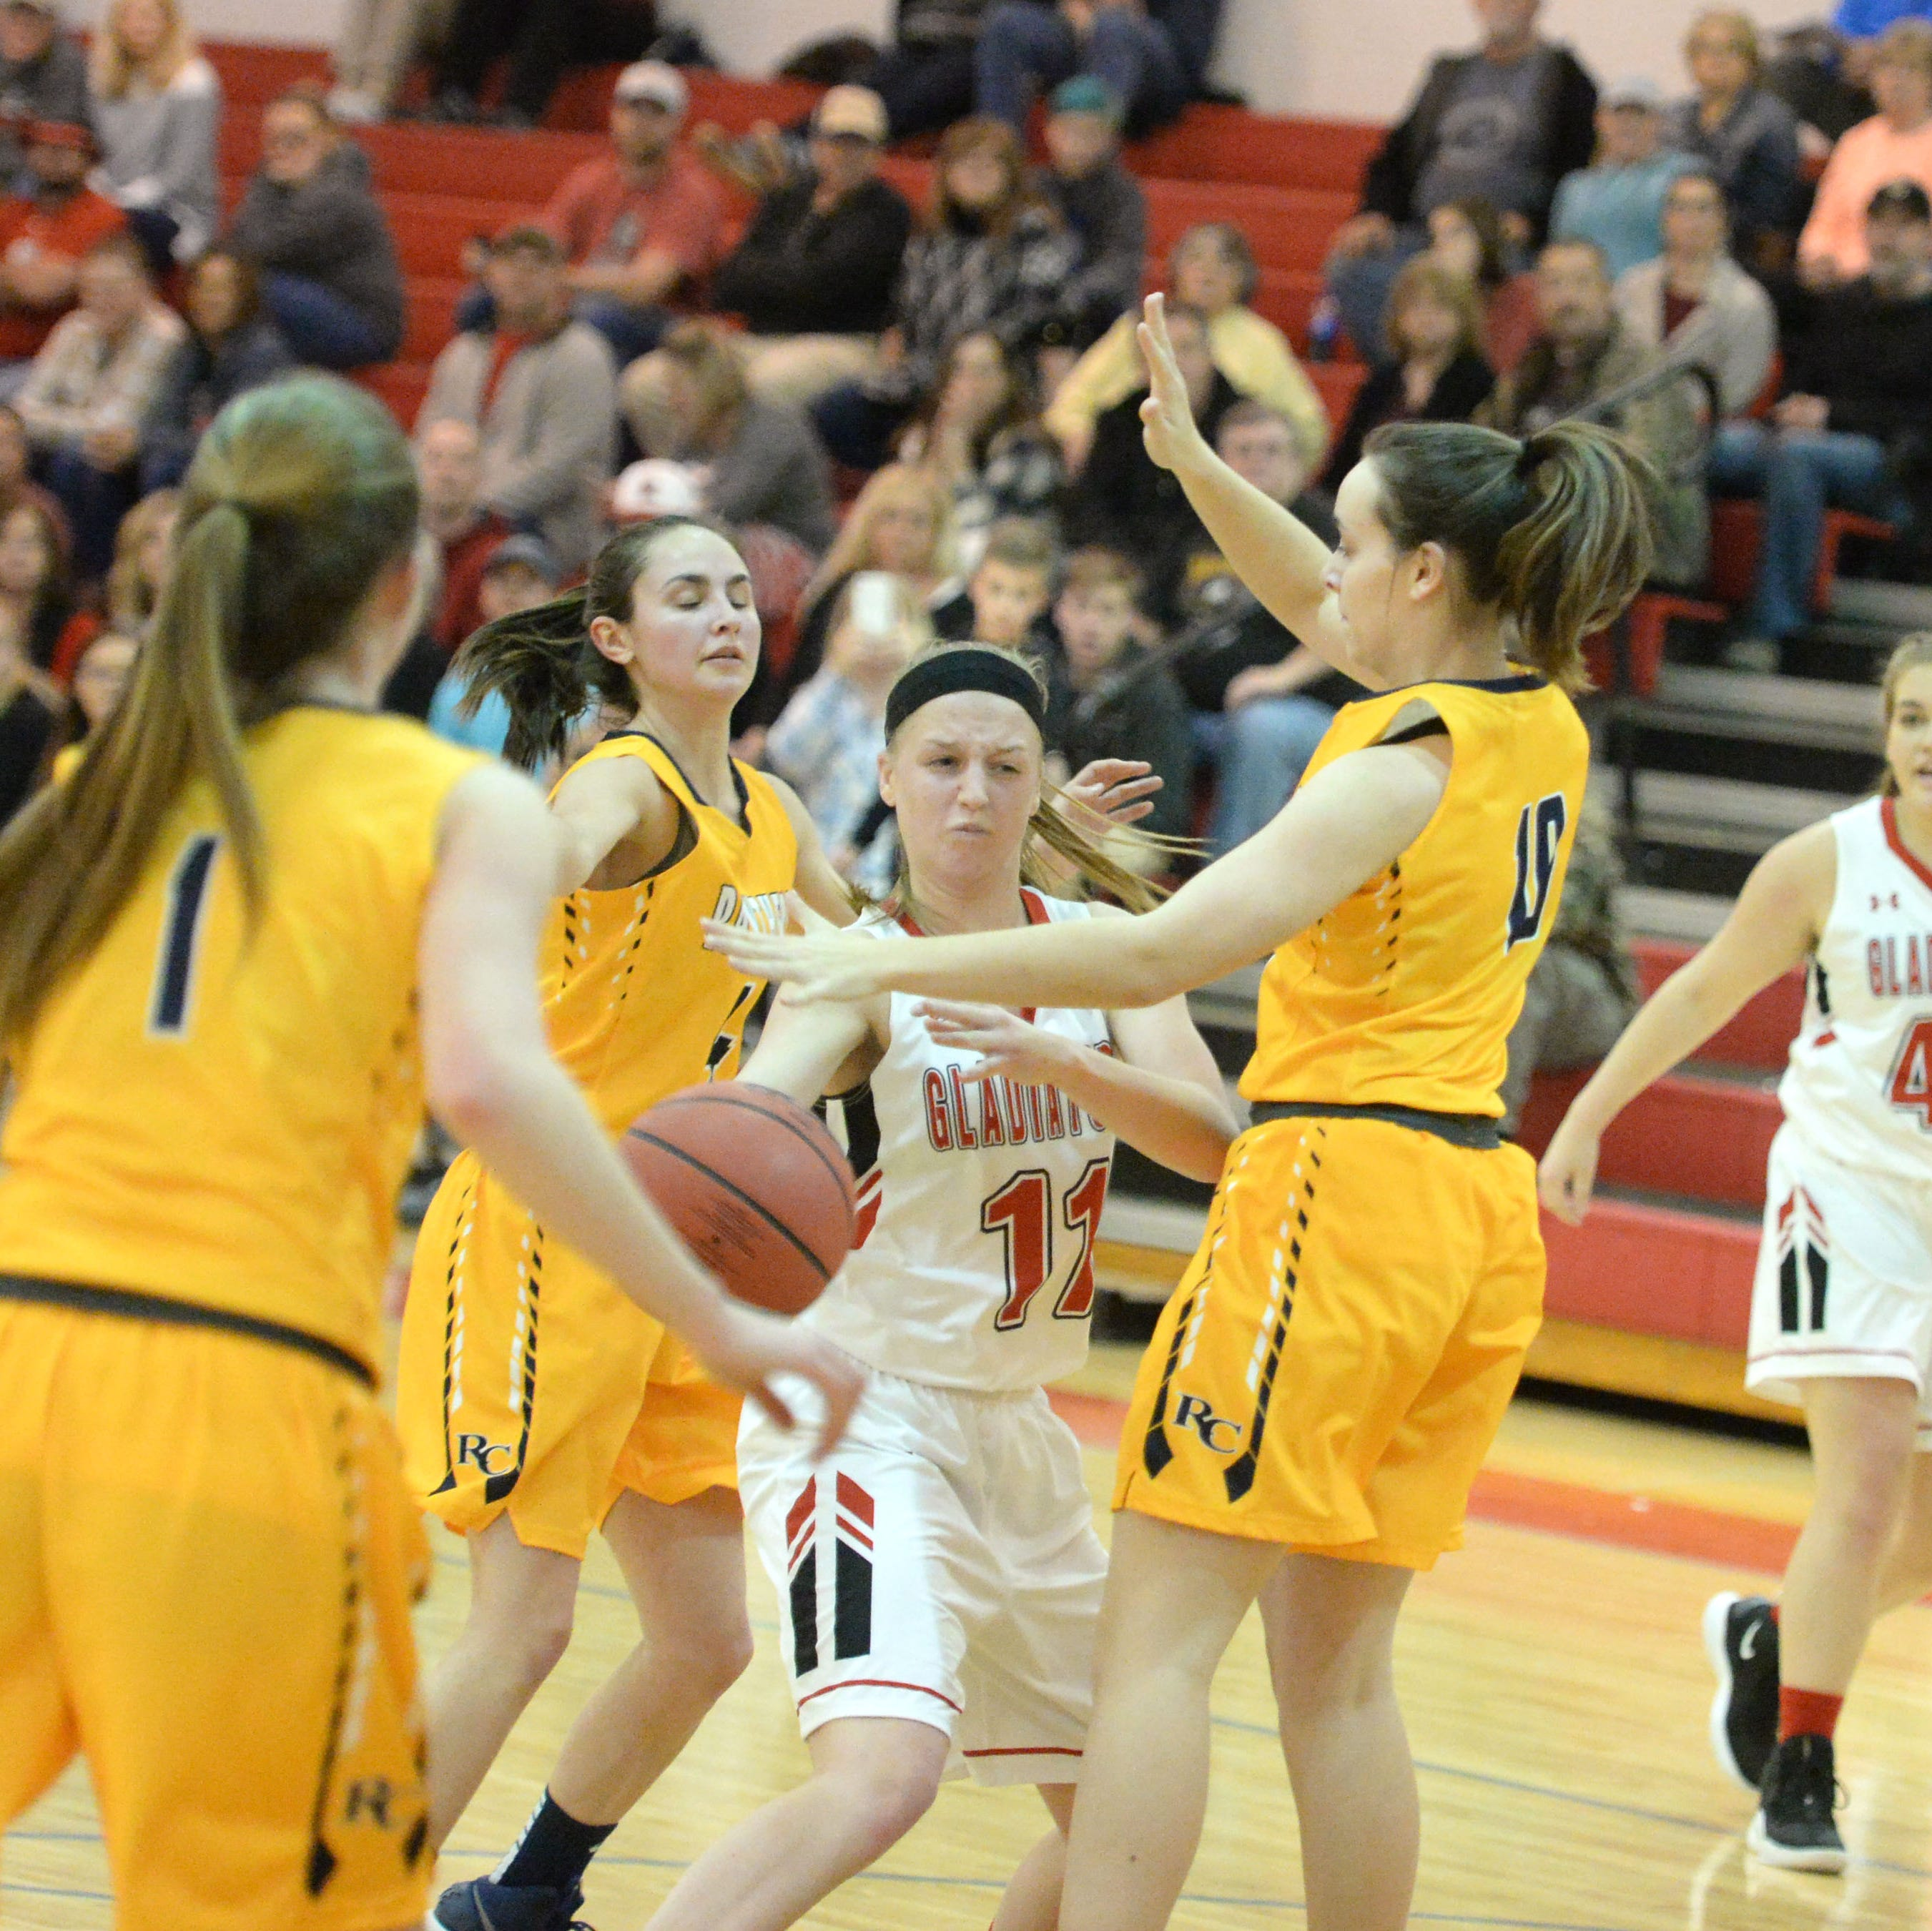 Riverheads' Moore voted All-City/County top player